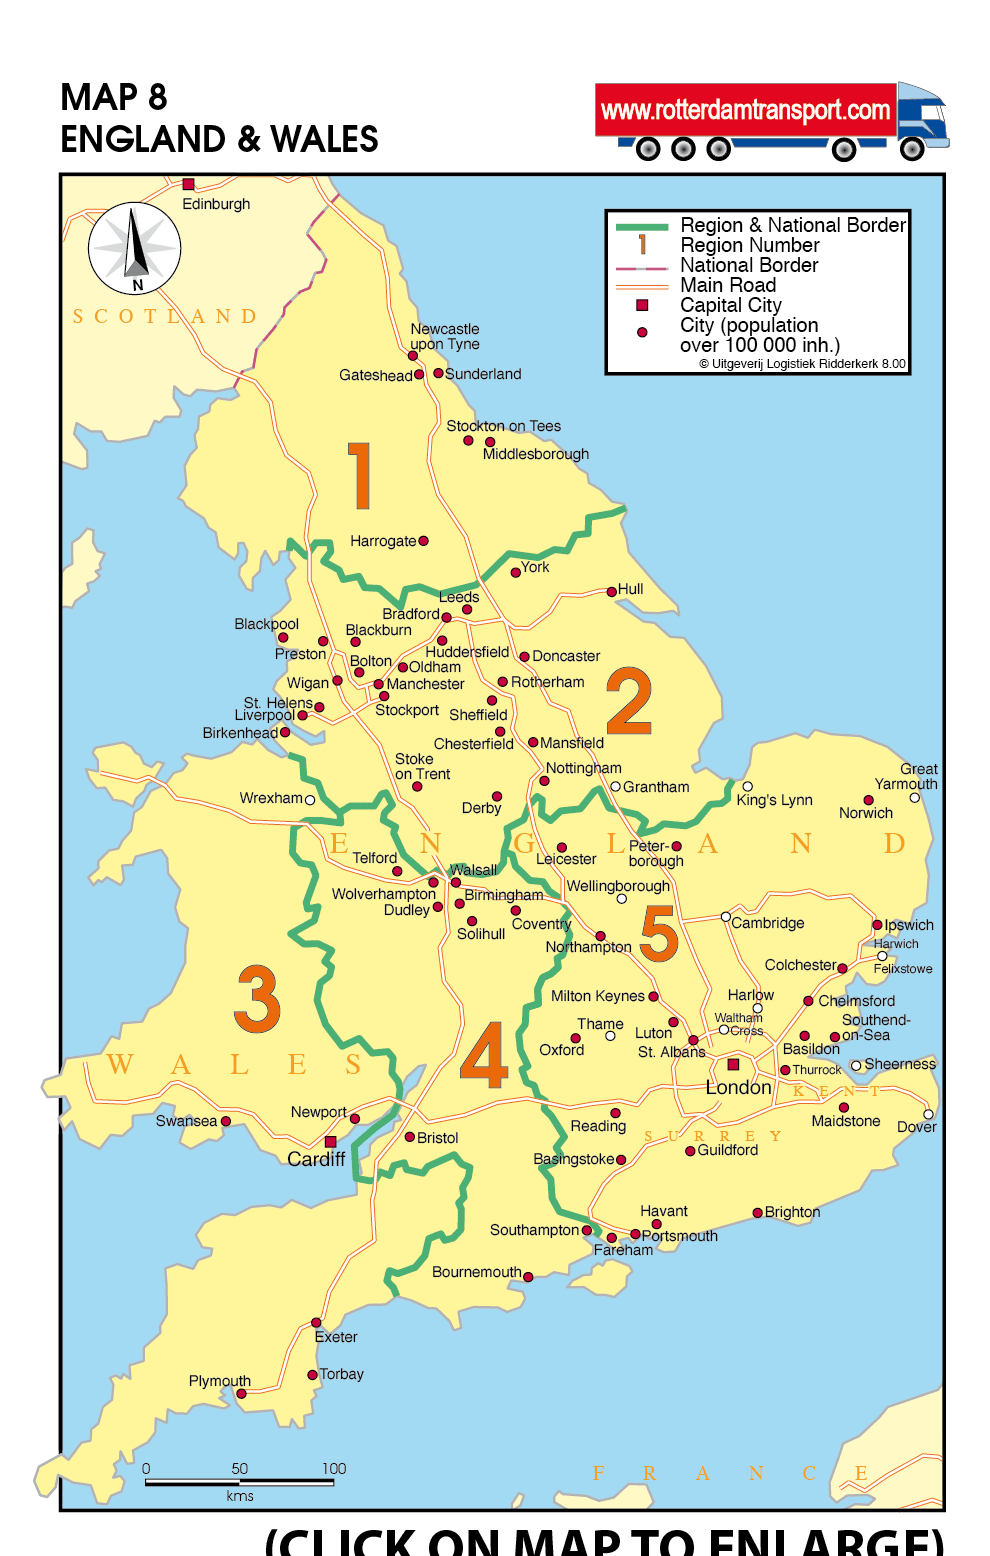 Country Map Of England.Www Rotterdamtransport Com Maps Groupage By Road